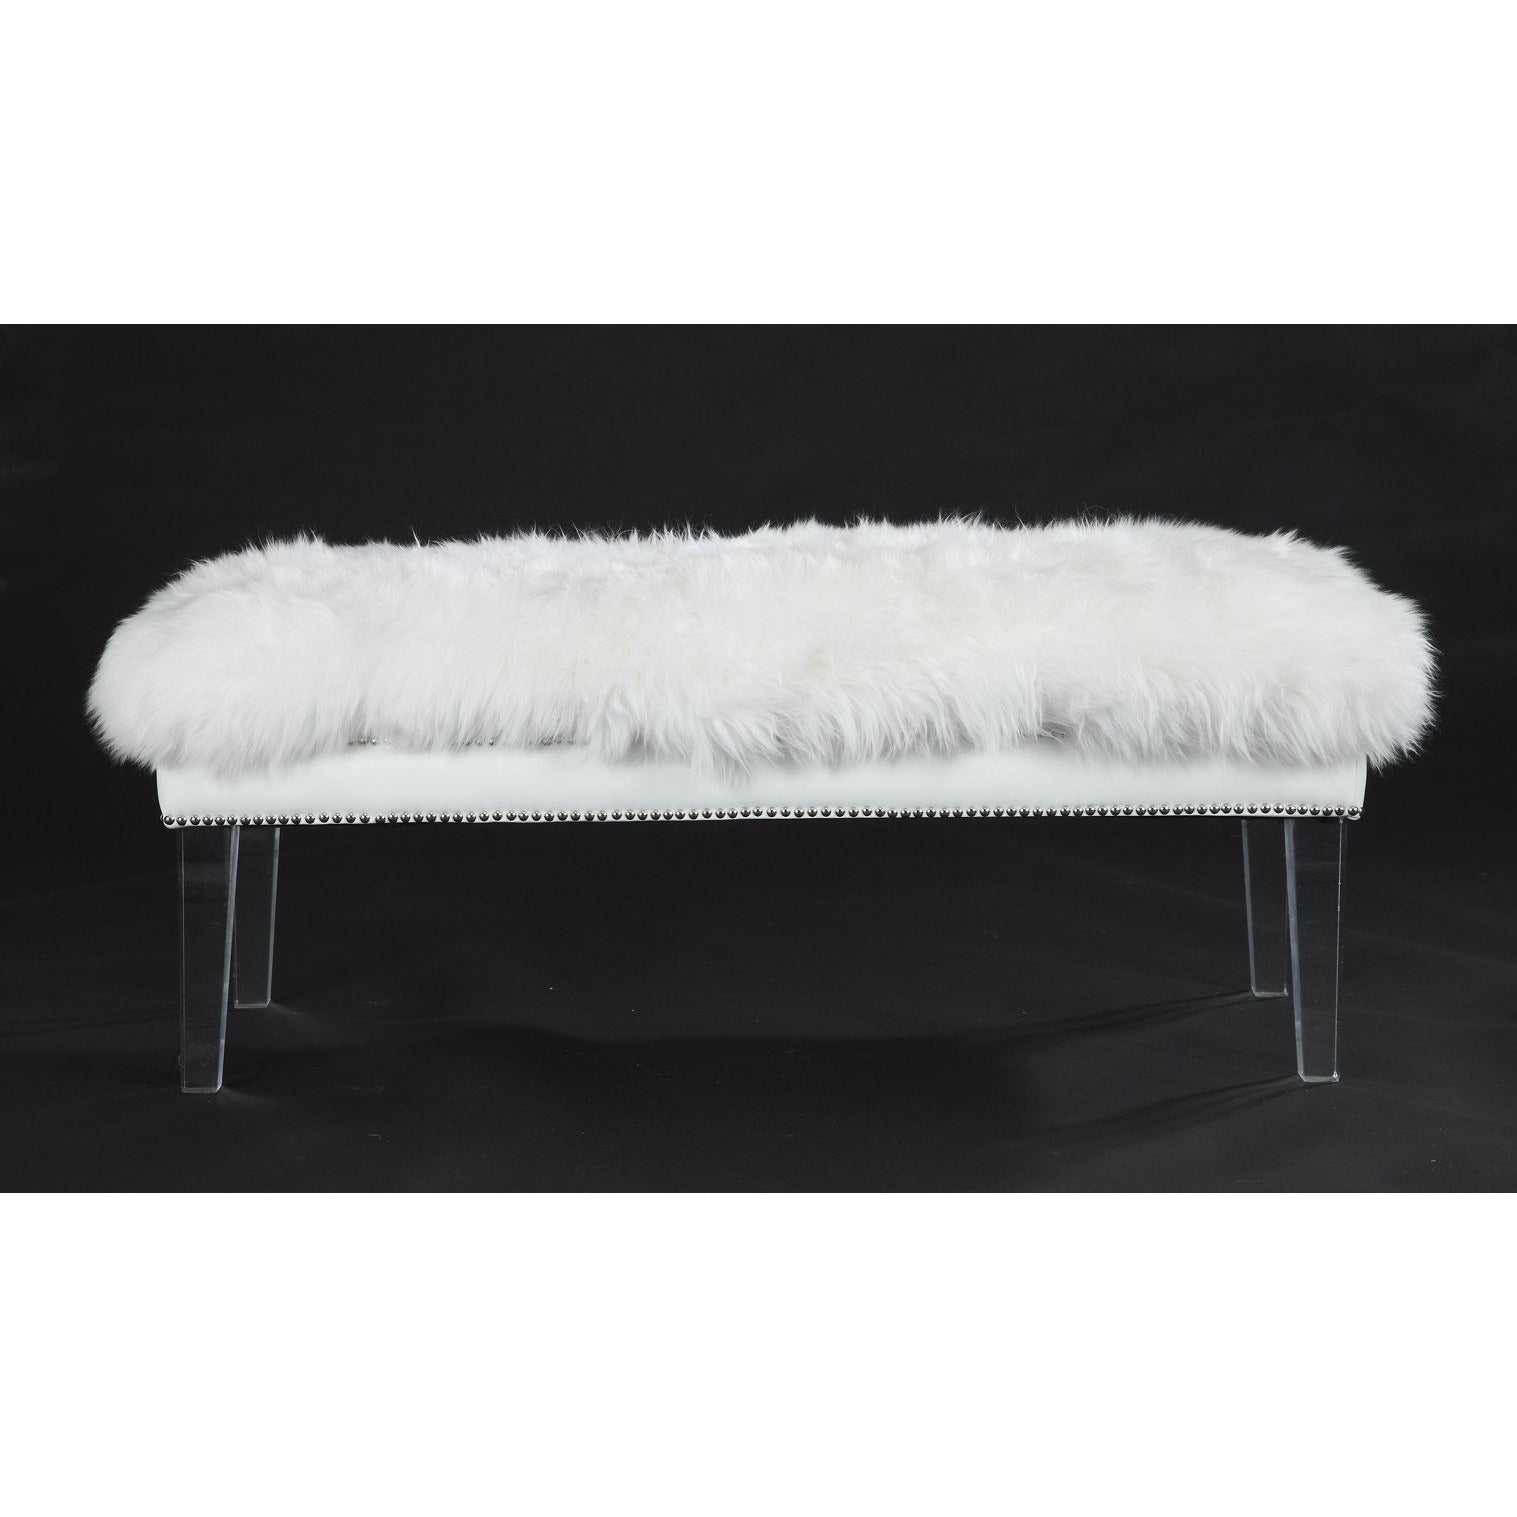 Tov Furniture Modern Luxe White Sheepskin Lucite Bench Tov